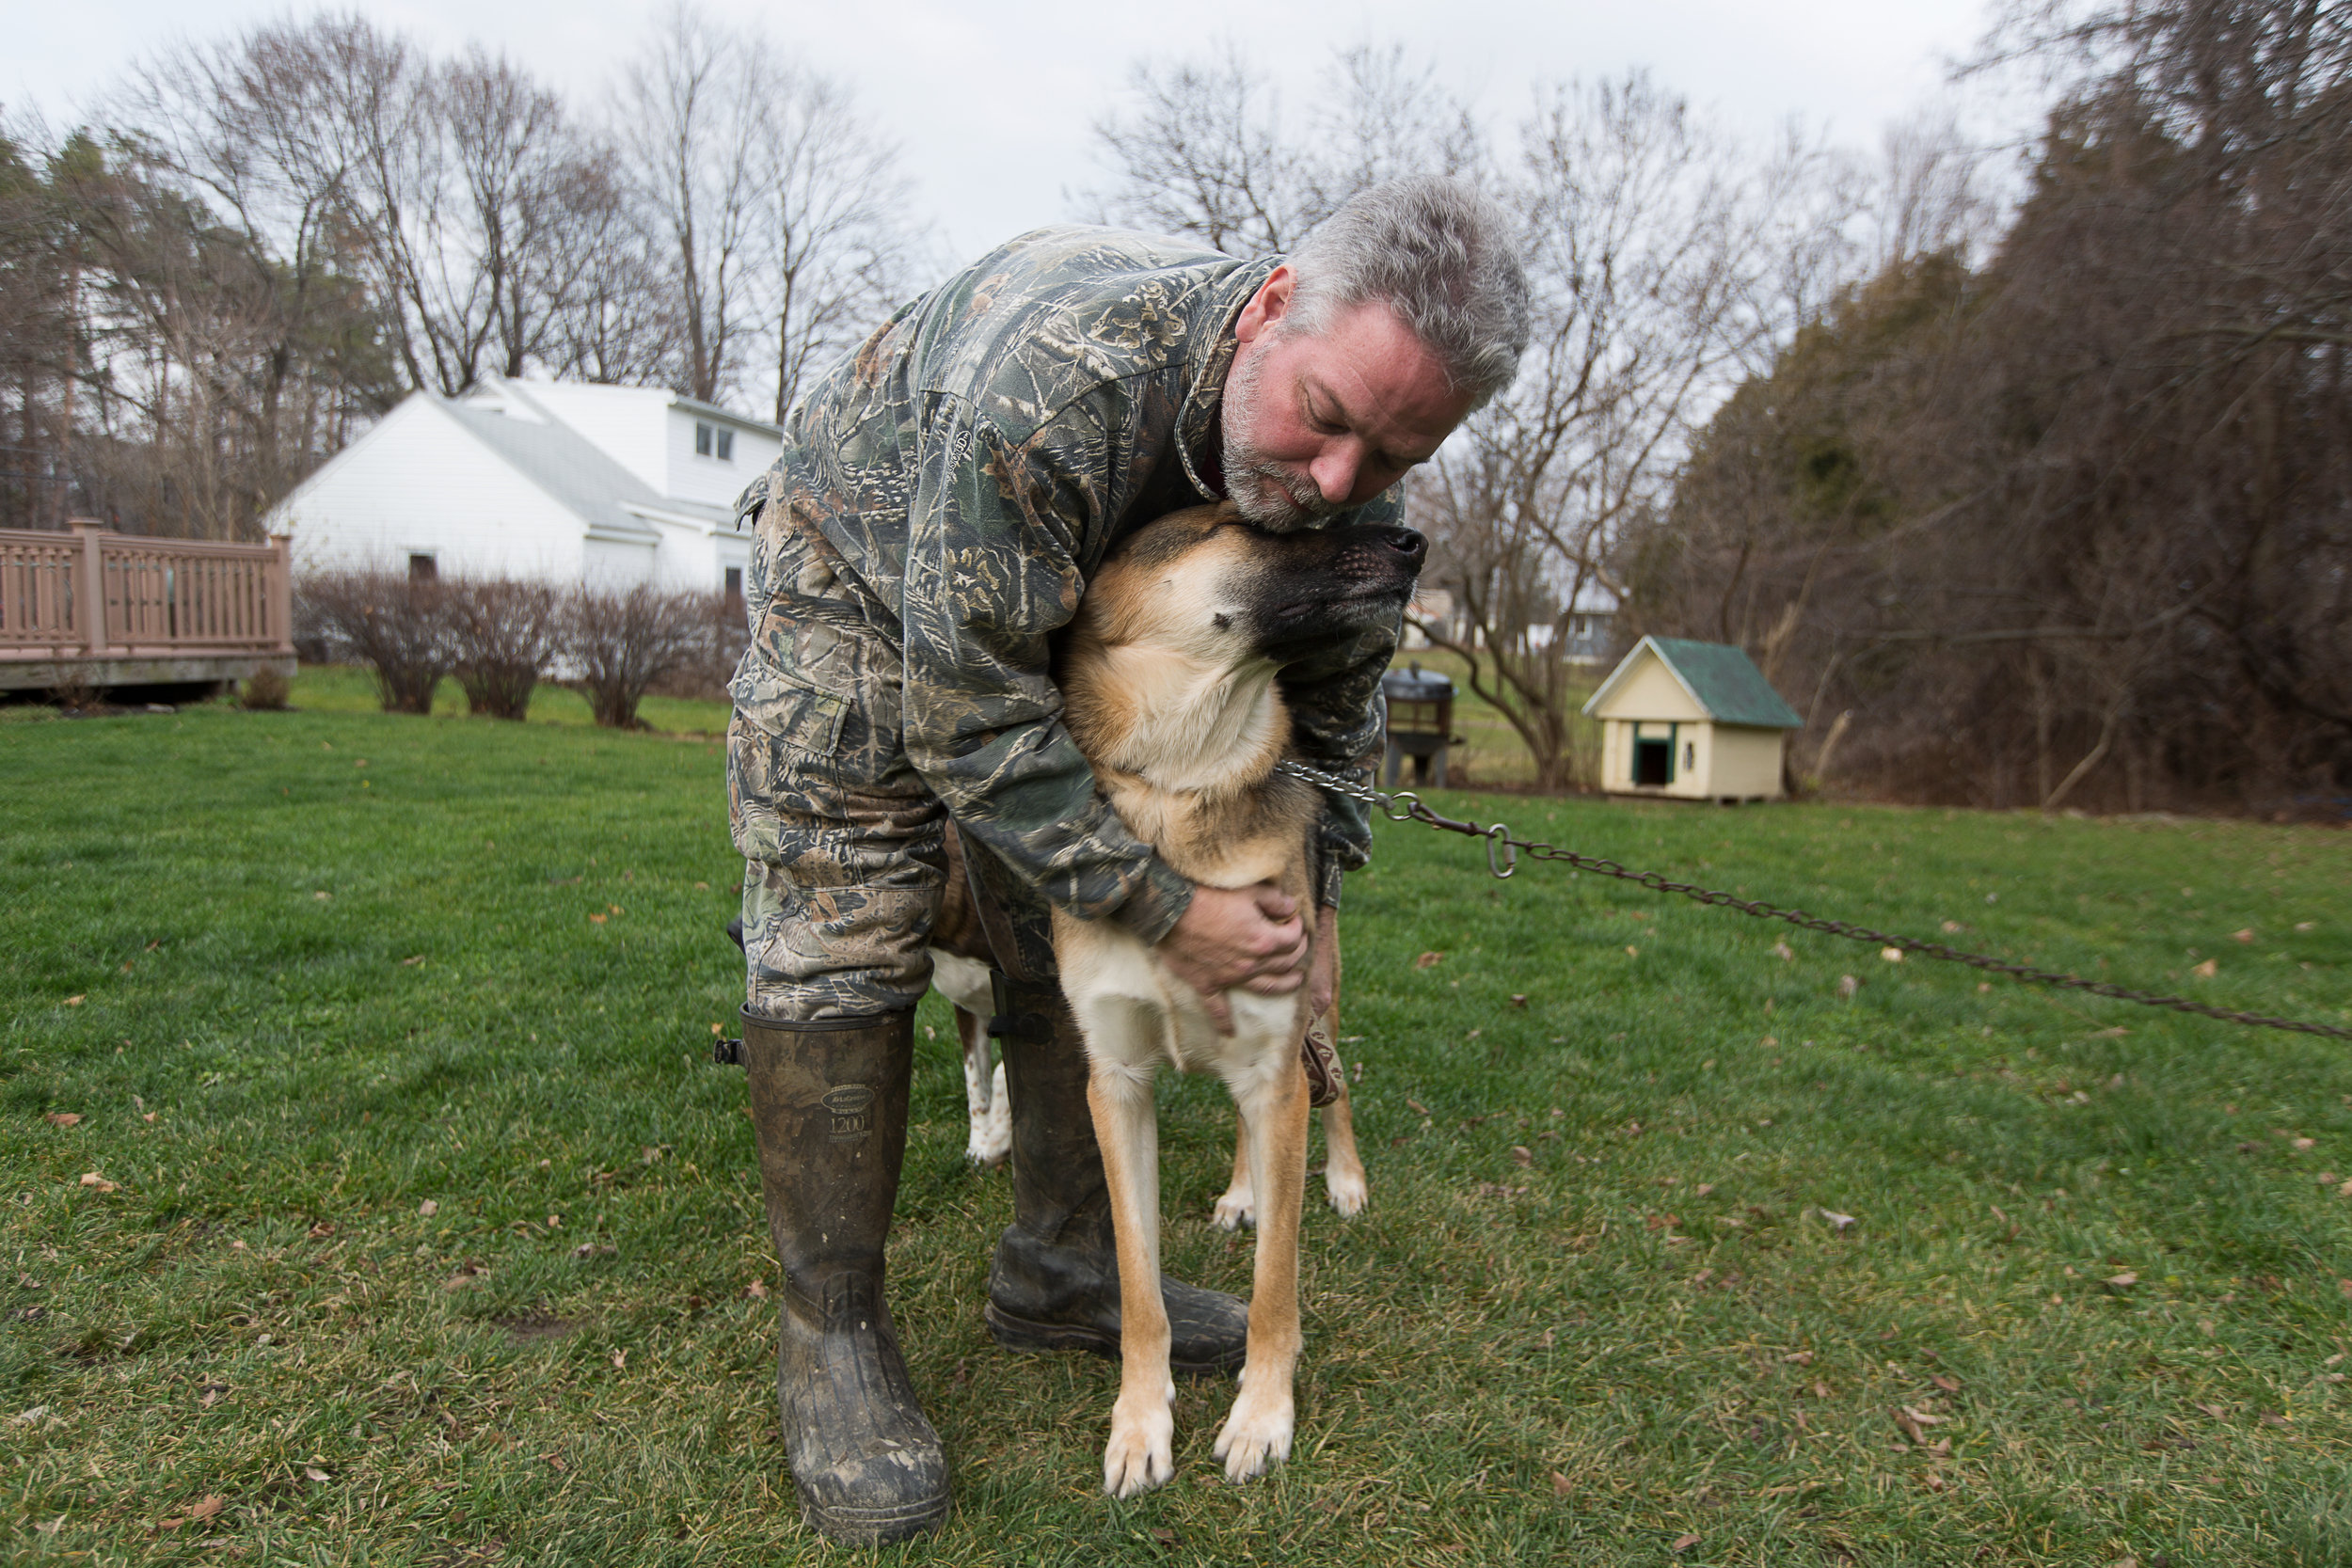 """Ron hugs Doreen's dog Moose at Doreen's house in Jamesville, N.Y. on Nov. 13, 2015. """"The dogs have been very therapeutic for me,"""" said Ron. """"They know something is wrong."""""""